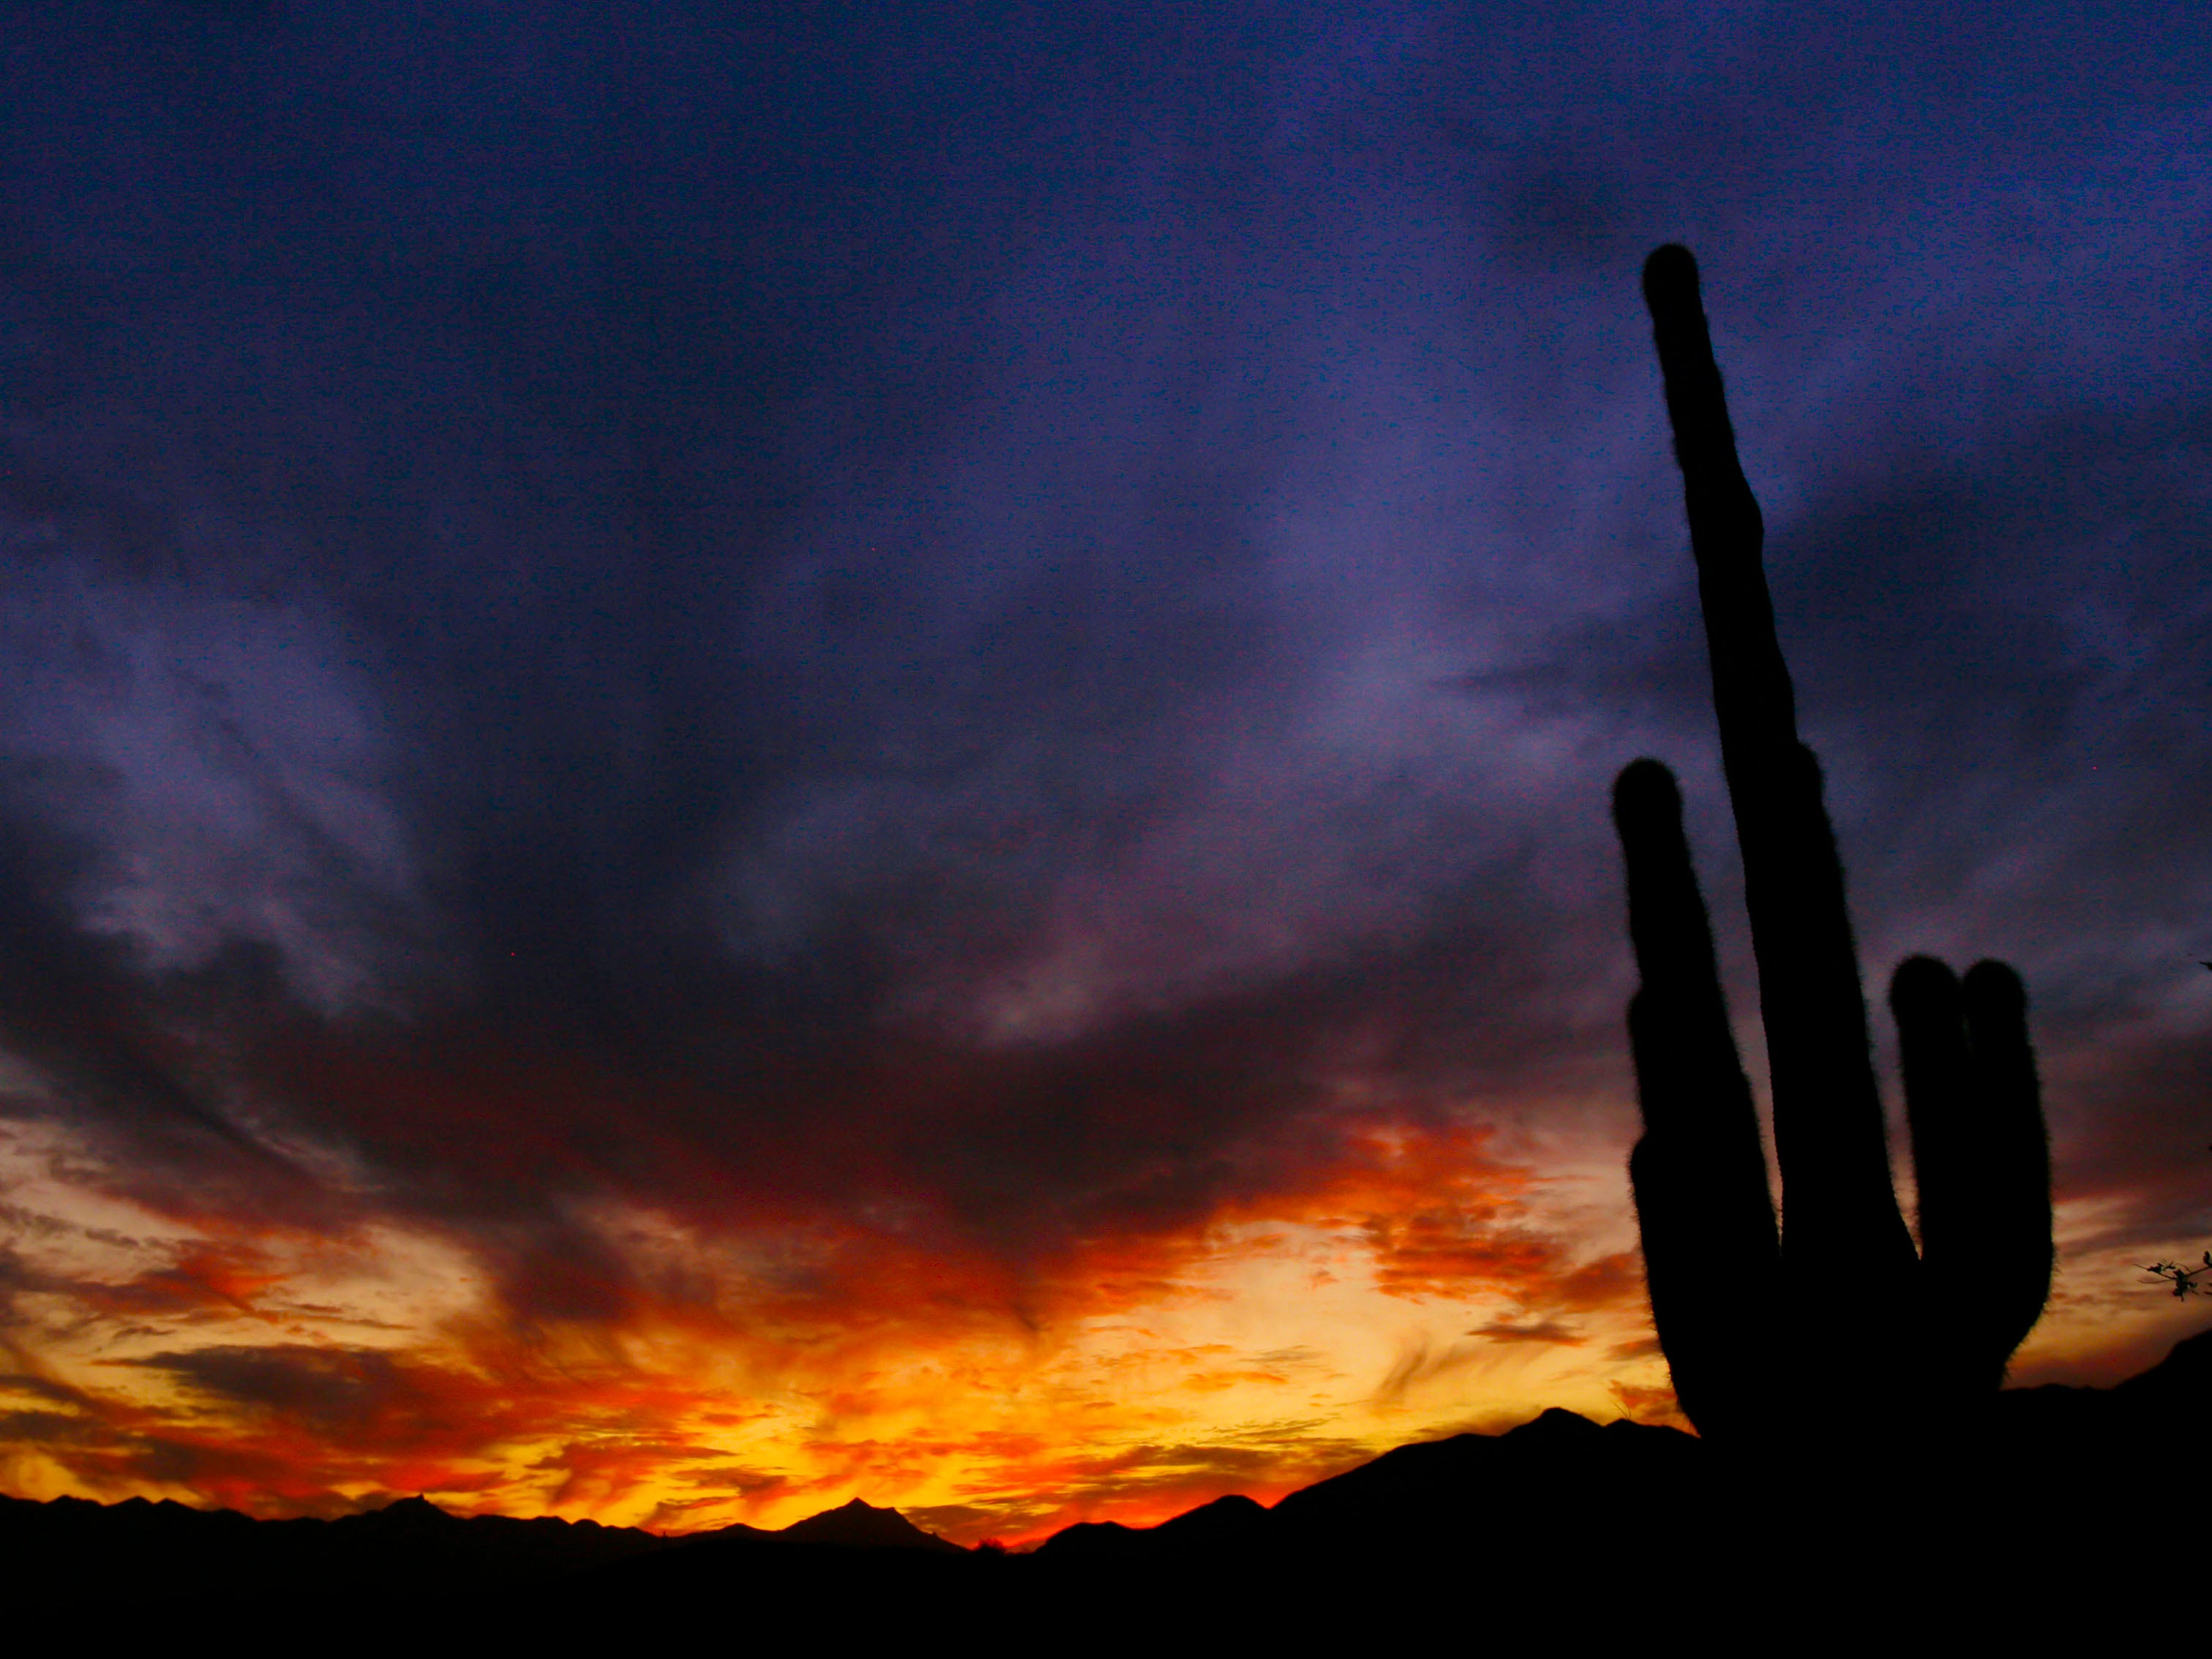 The sun sets beyond the Estrella Mountains as seen from Ahwatukee Saturday, Oct.10, 2009 in Phoenix.